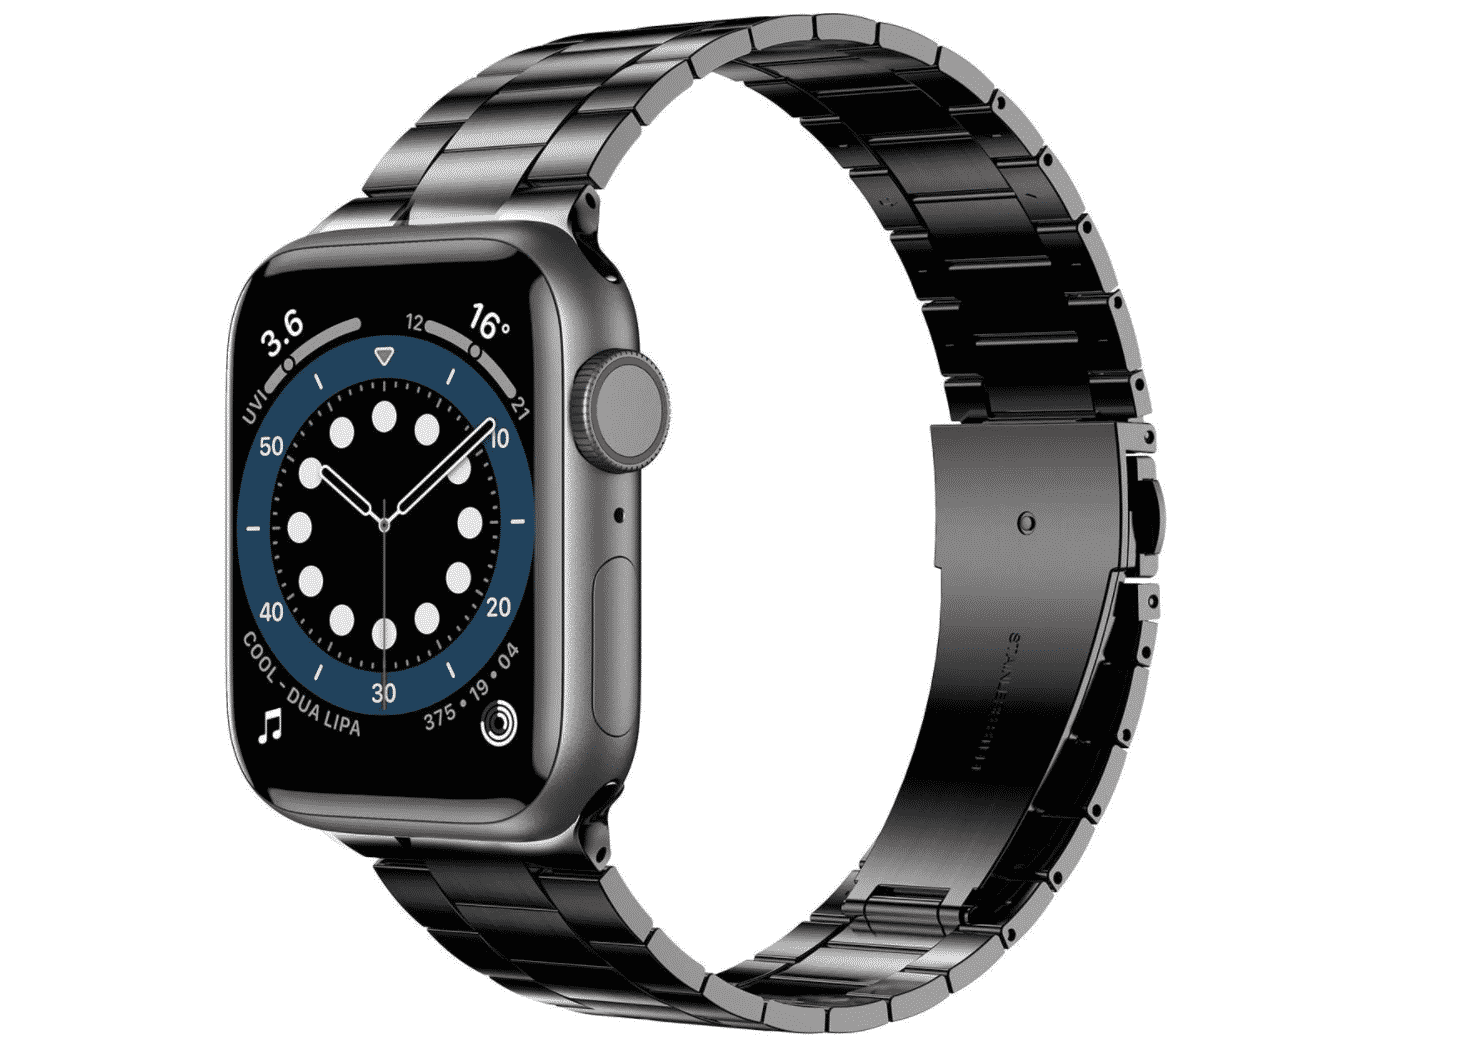 Achieve a stylish look with the Anwaut stainless steel wristband for your Apple Watch, now only $13